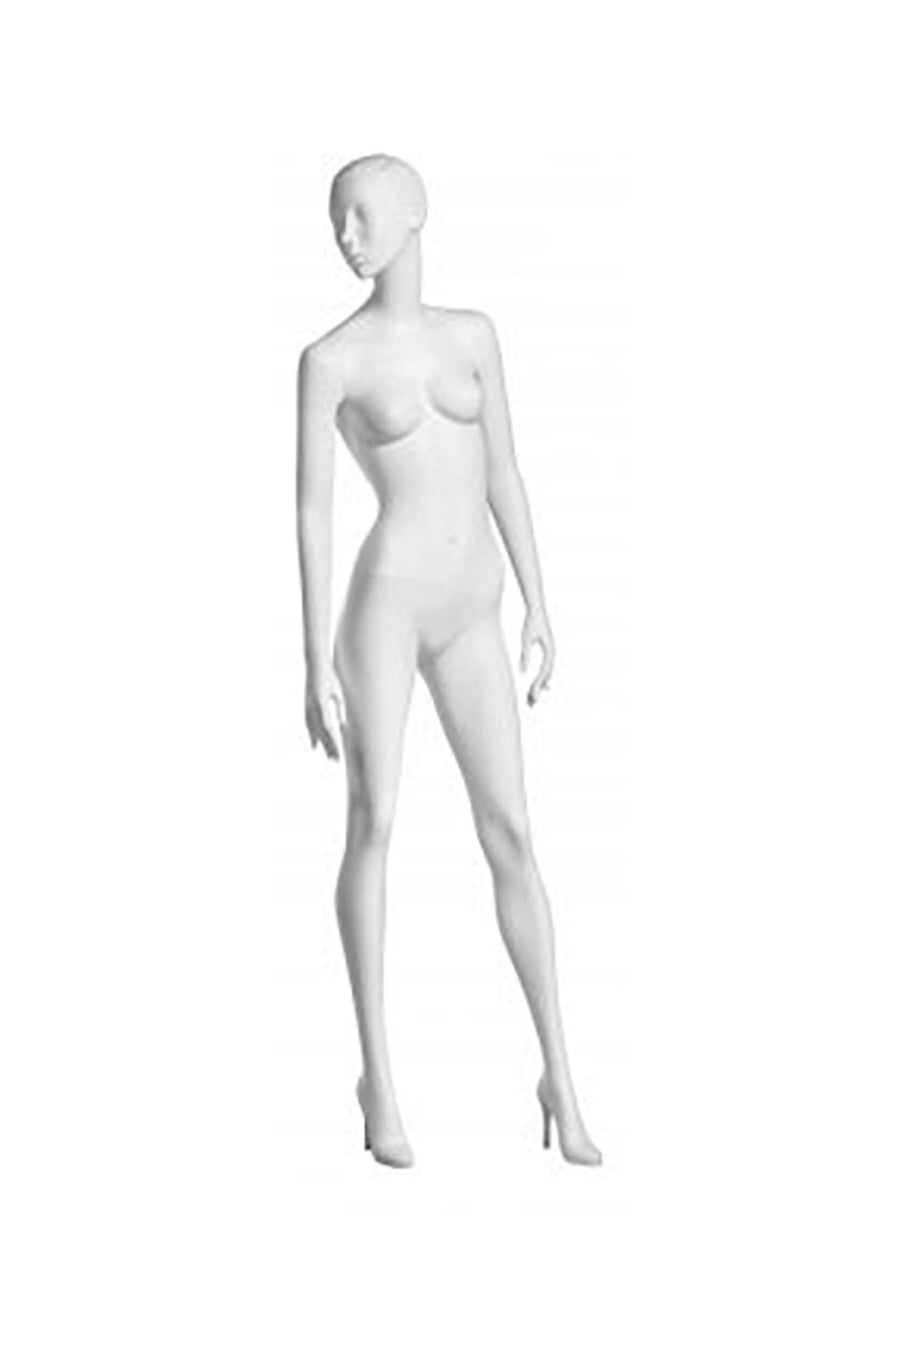 jet black female mannequin with arms at sides, head looking right, and left leg stepping forward